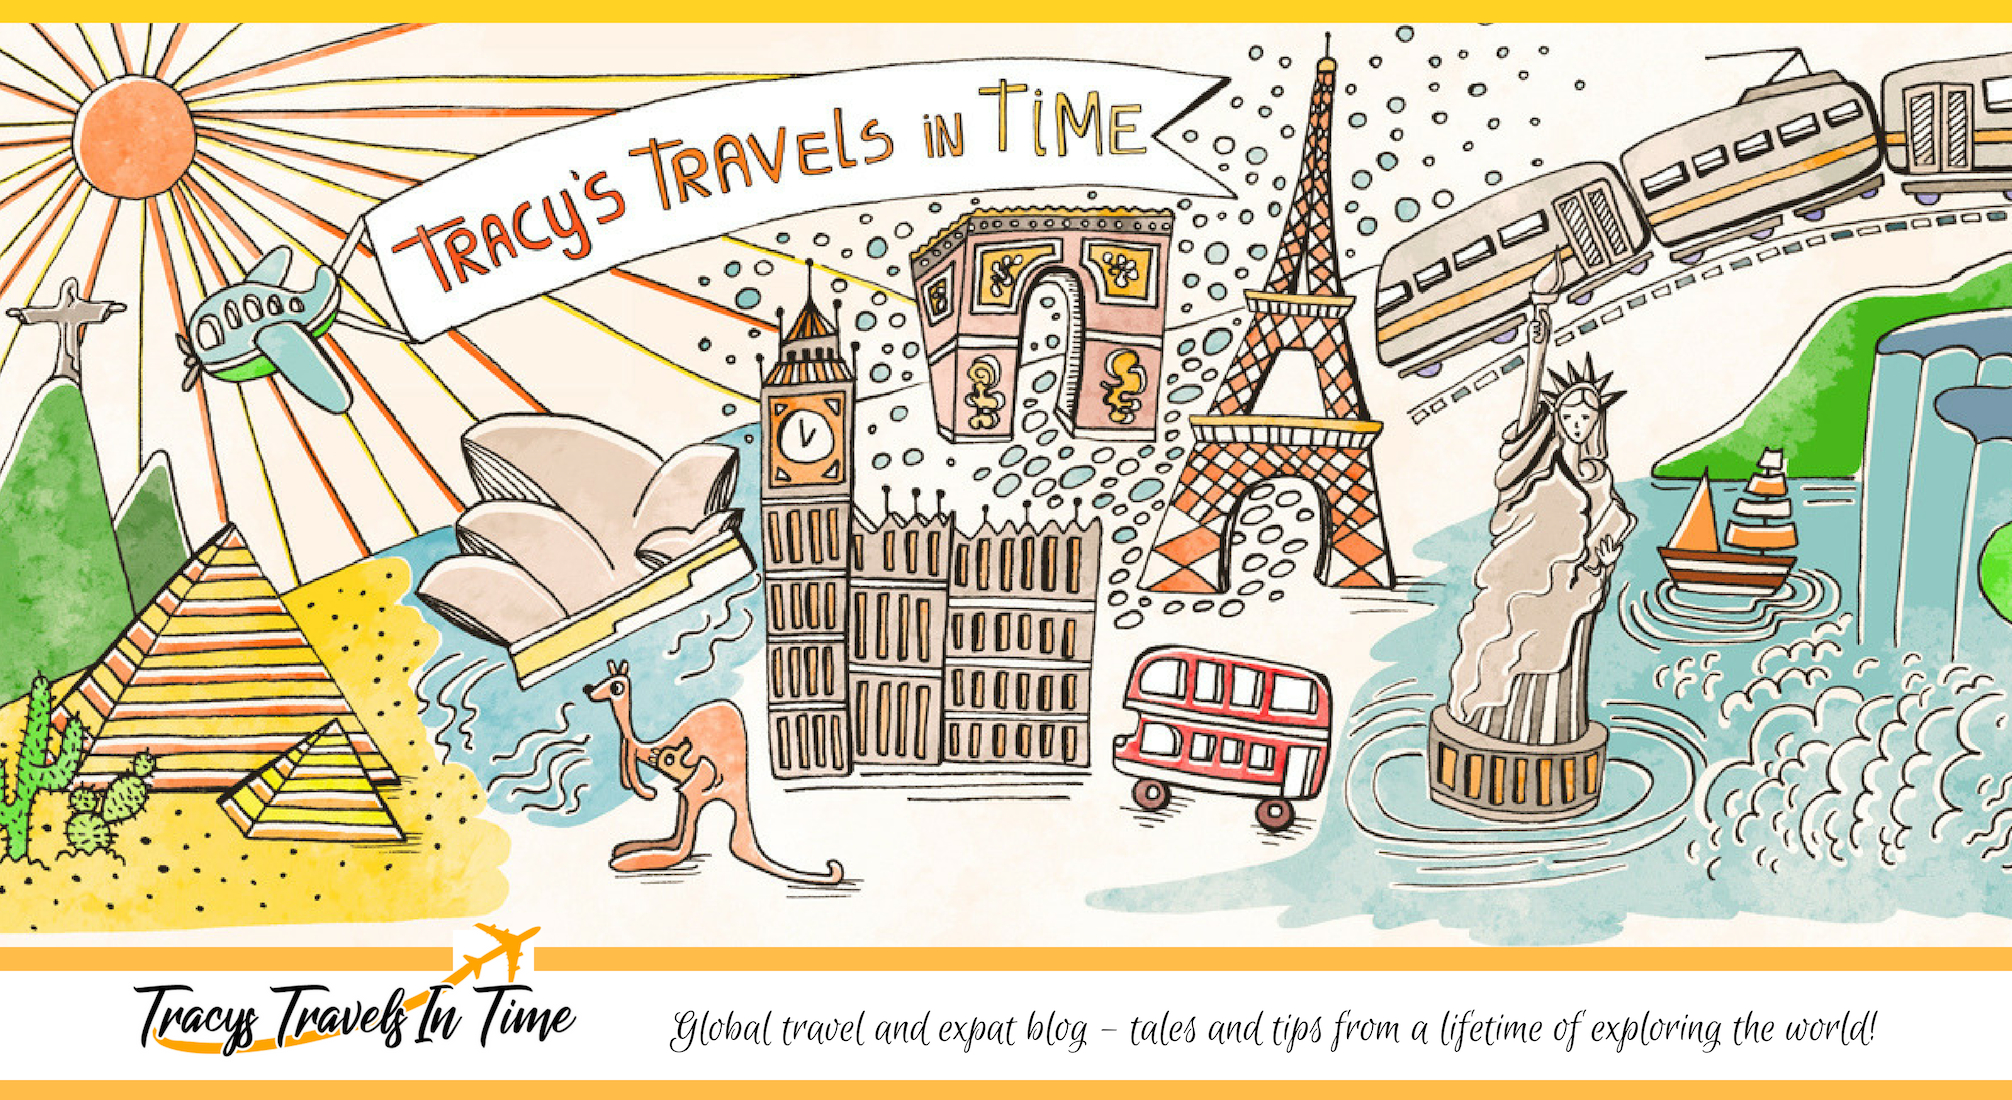 Tracy's Travels in Time